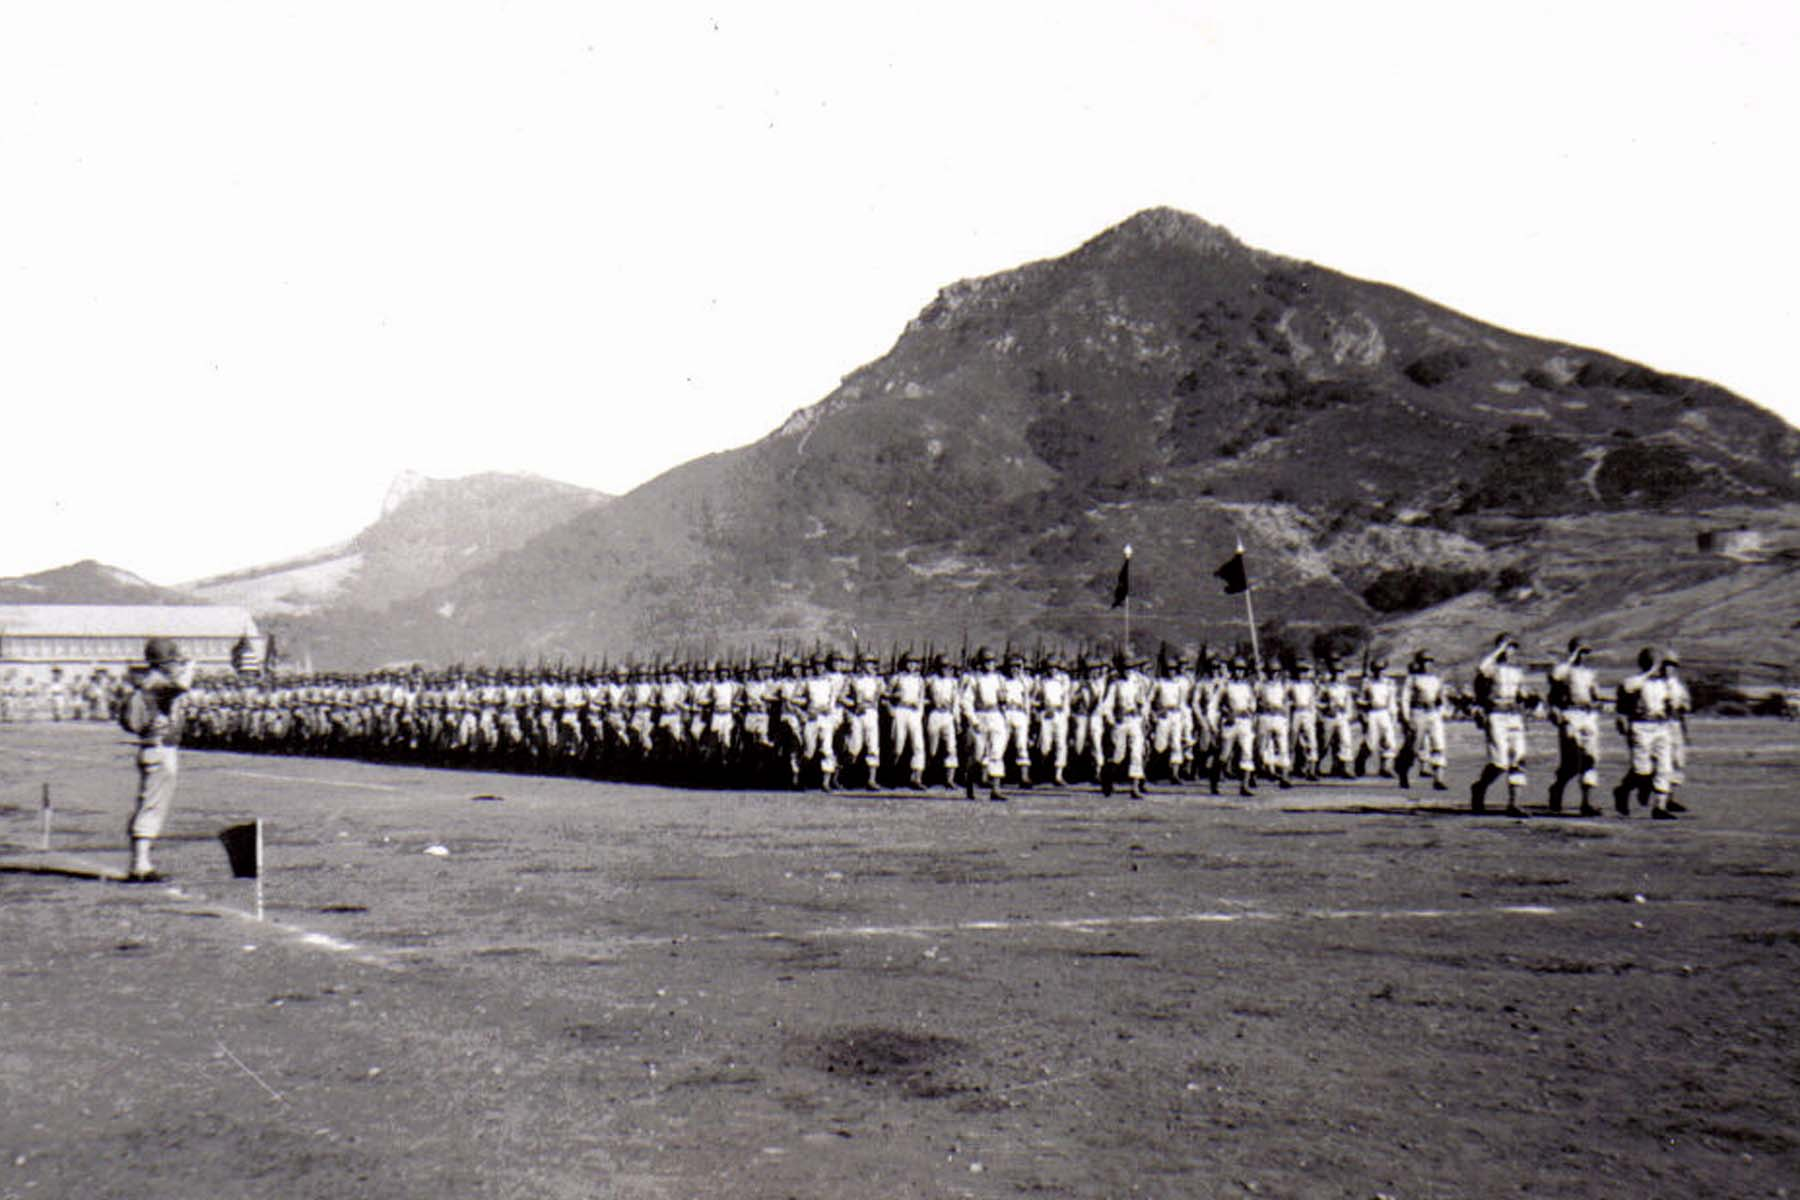 C28 Camp San Luis Obispo - August 2_ 1943 parade - The Second Battalion _presents arms_